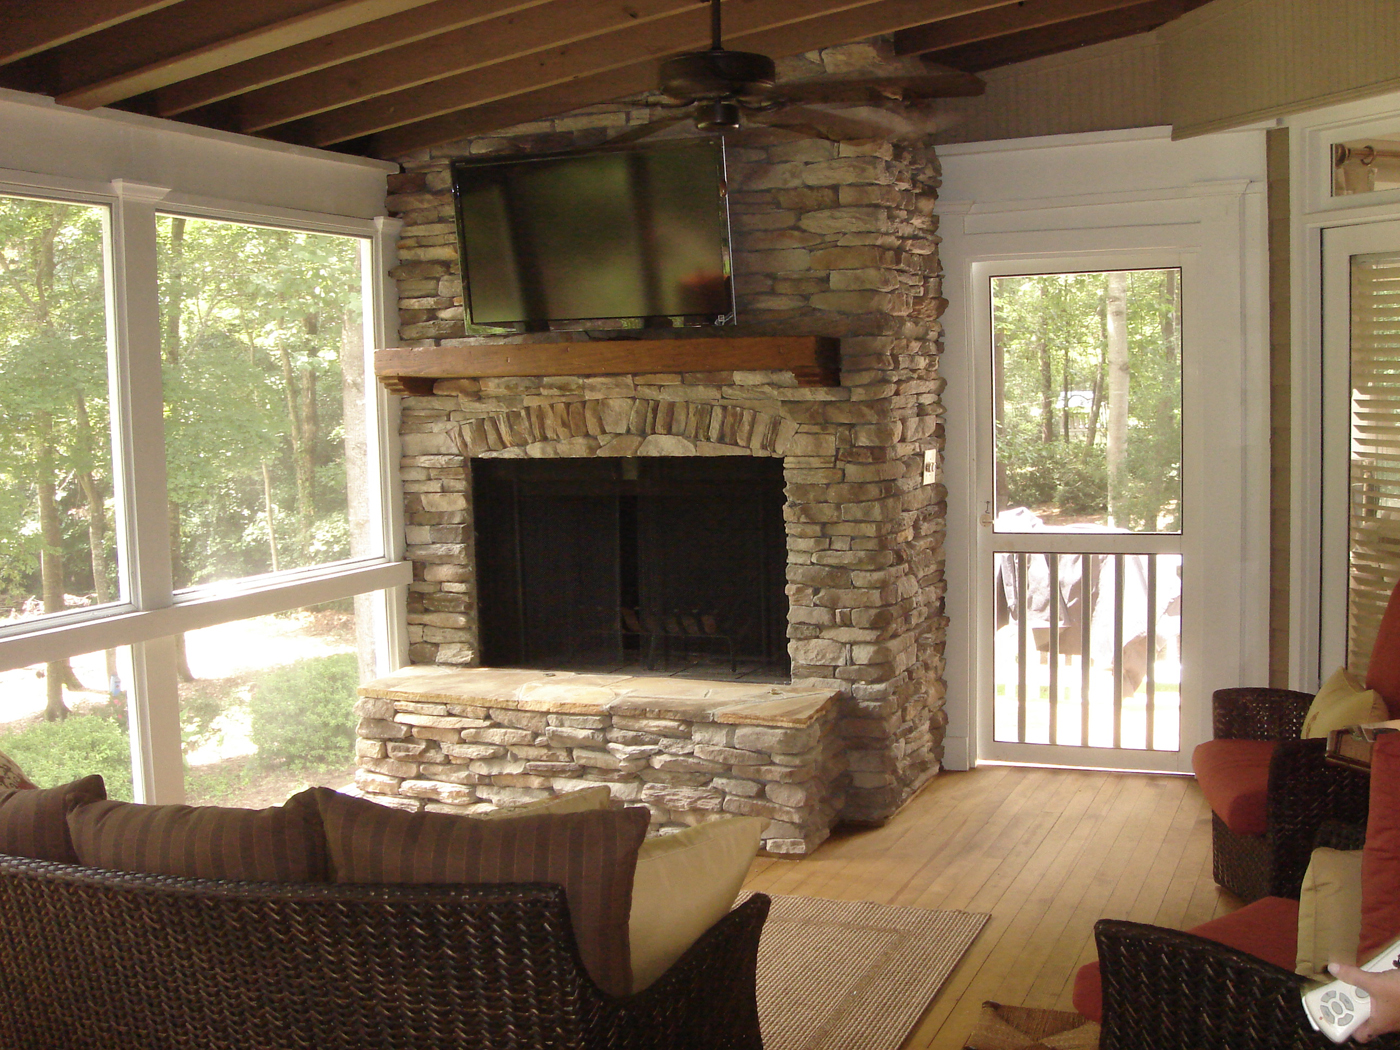 Screened in porch and fireplace